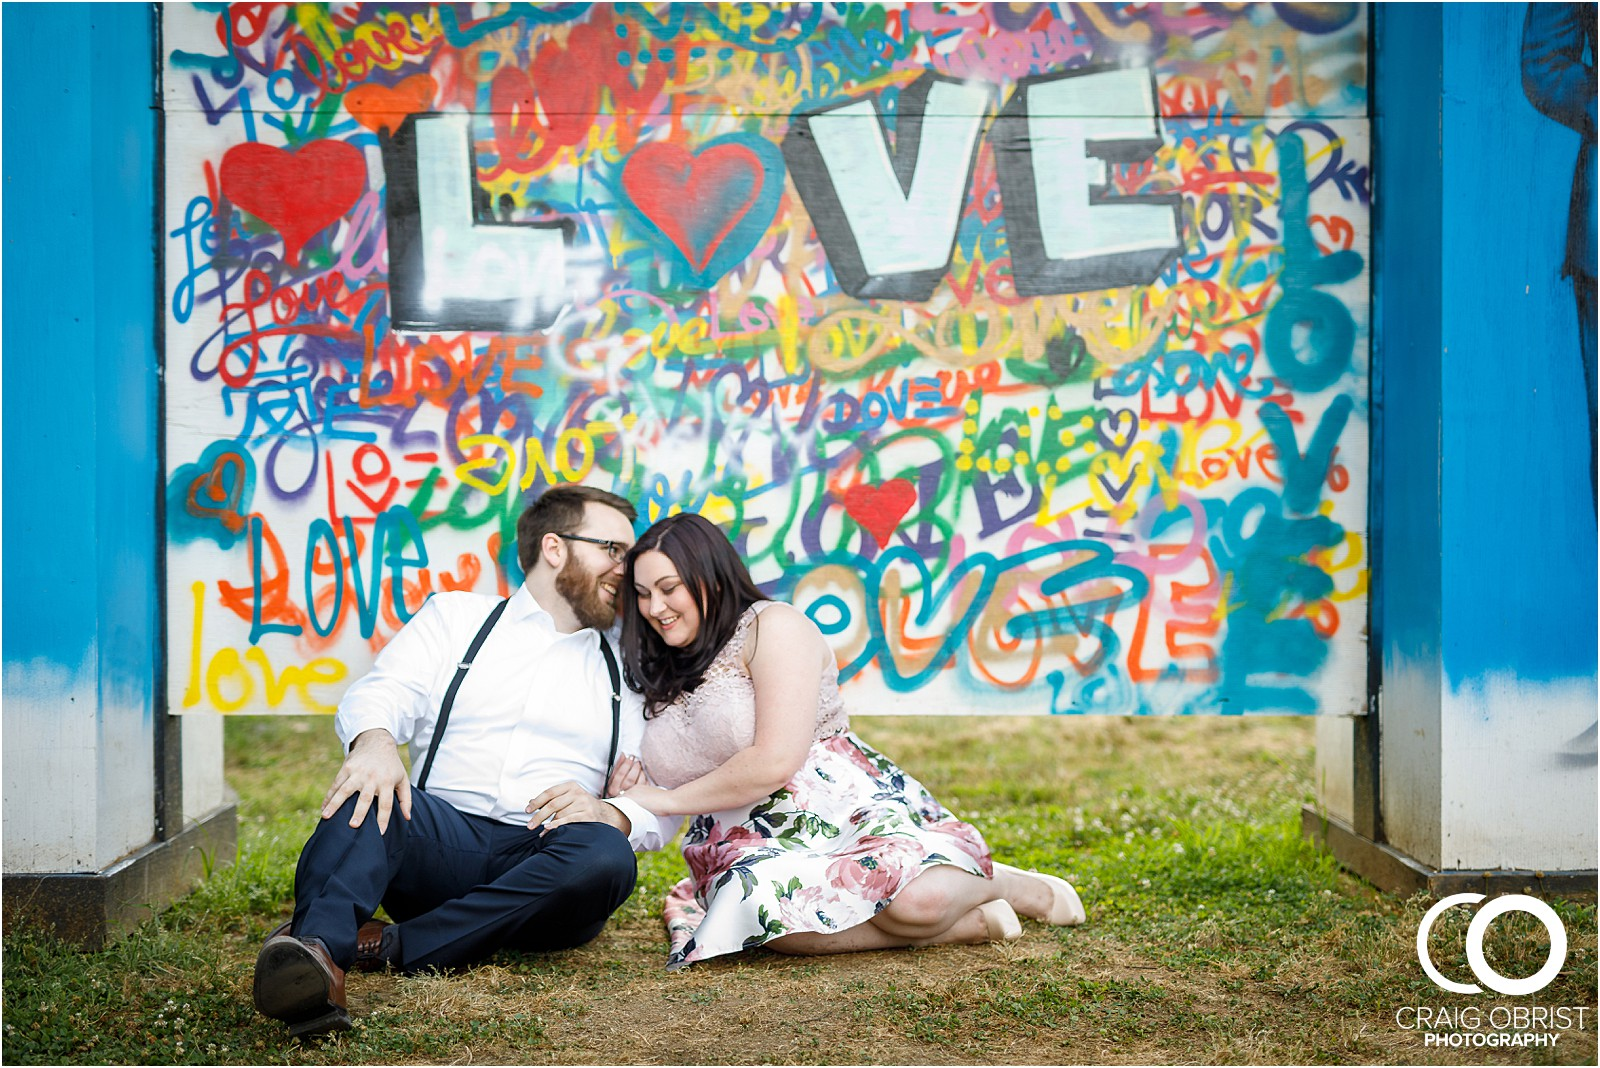 Ponce city markey Atlanta Beltline Piedmont Park engagement portraits_0004.jpg